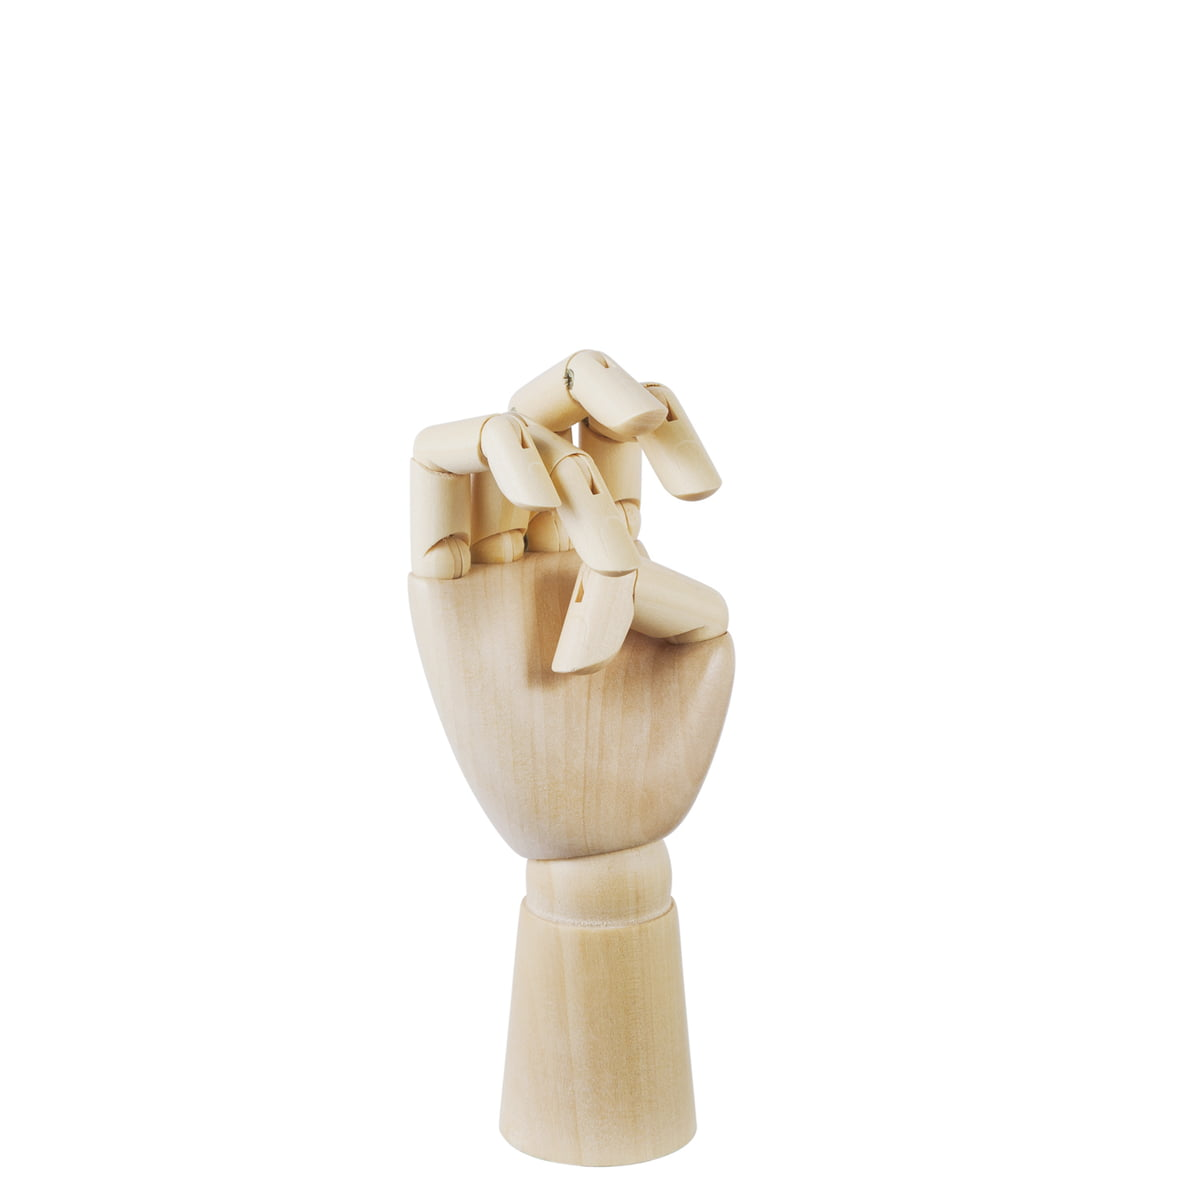 Wooden hand small